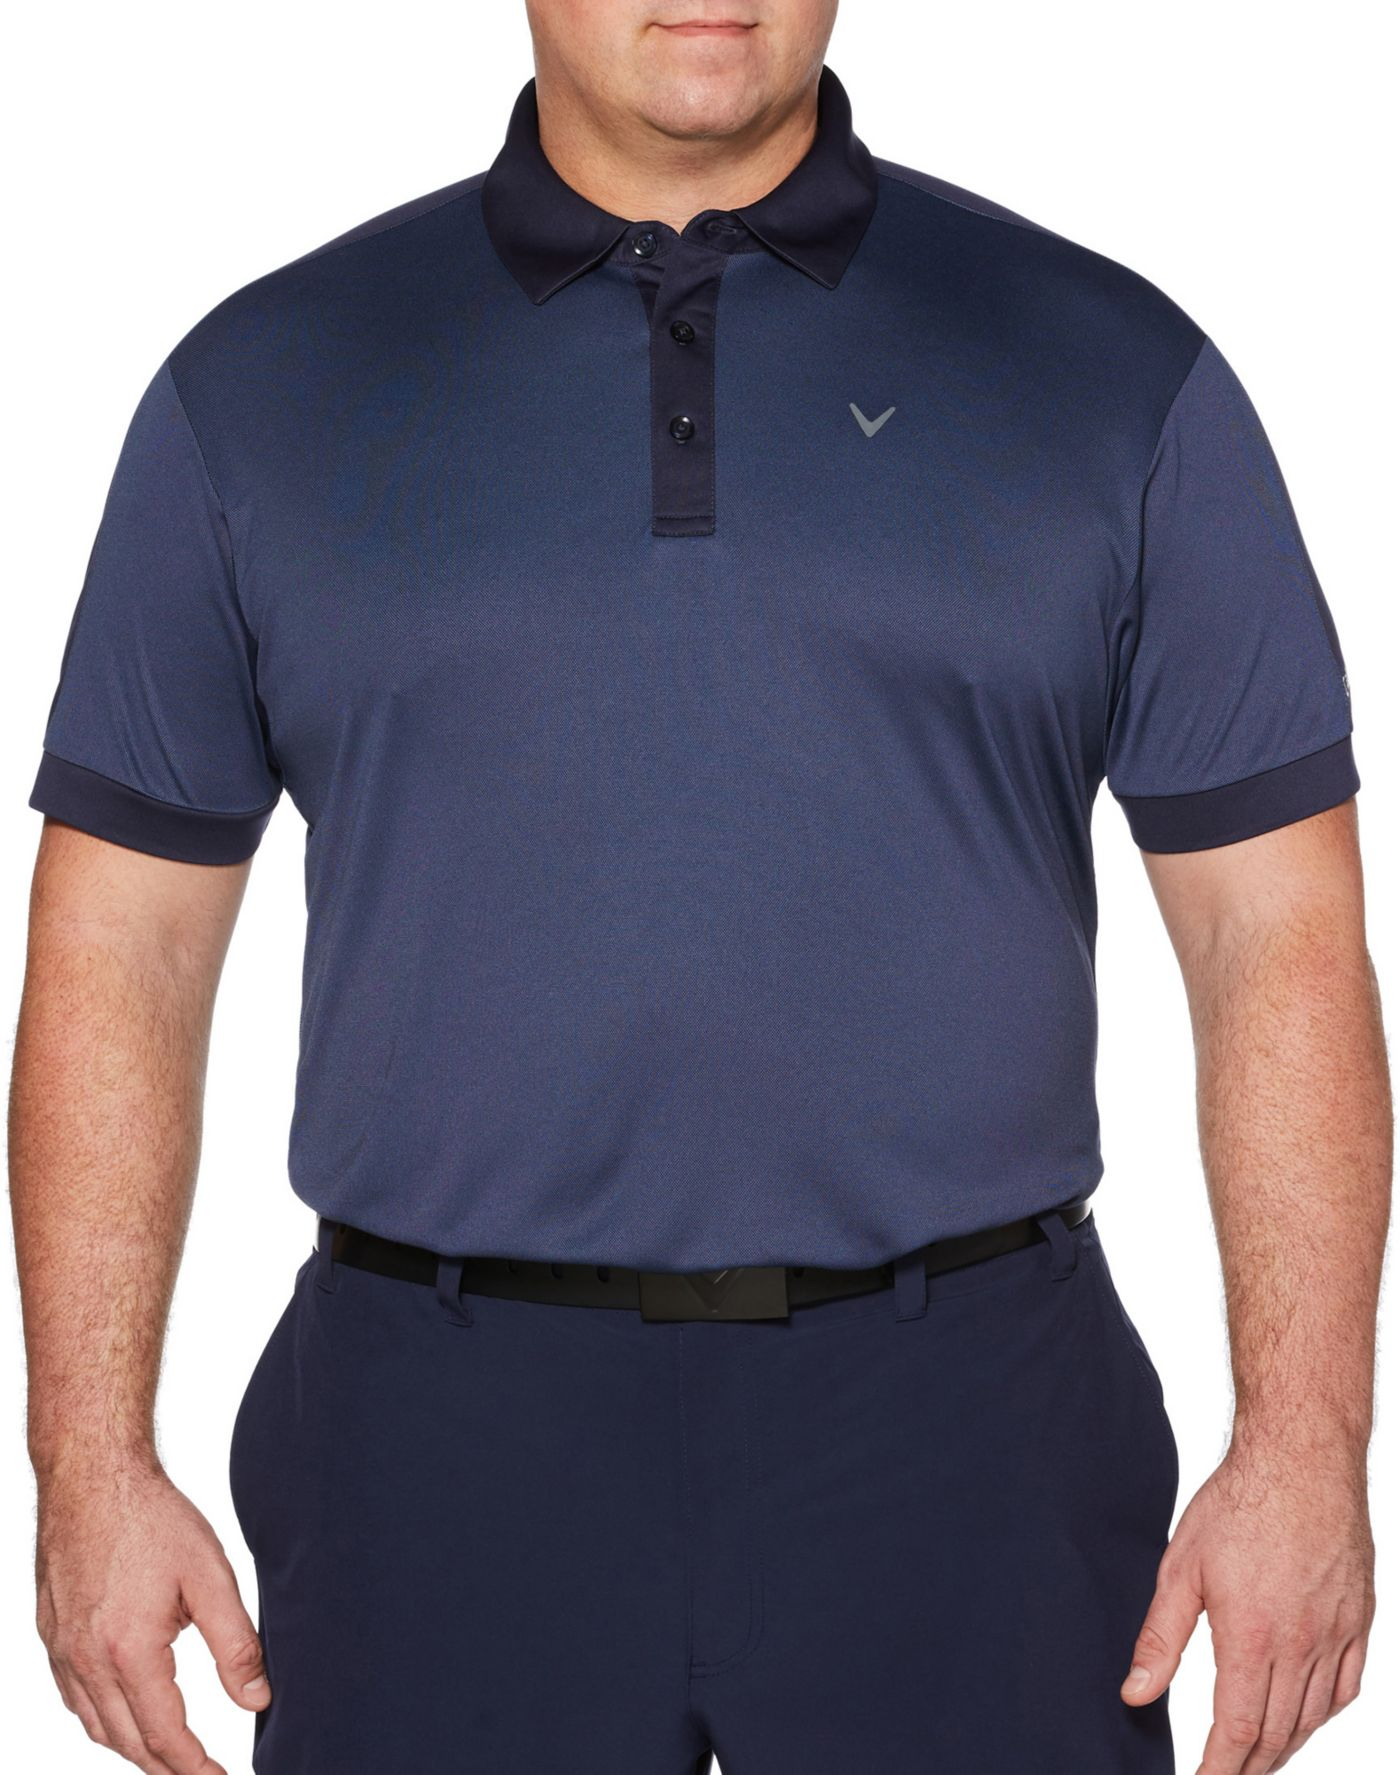 Callaway Men's Birdseye Golf Polo